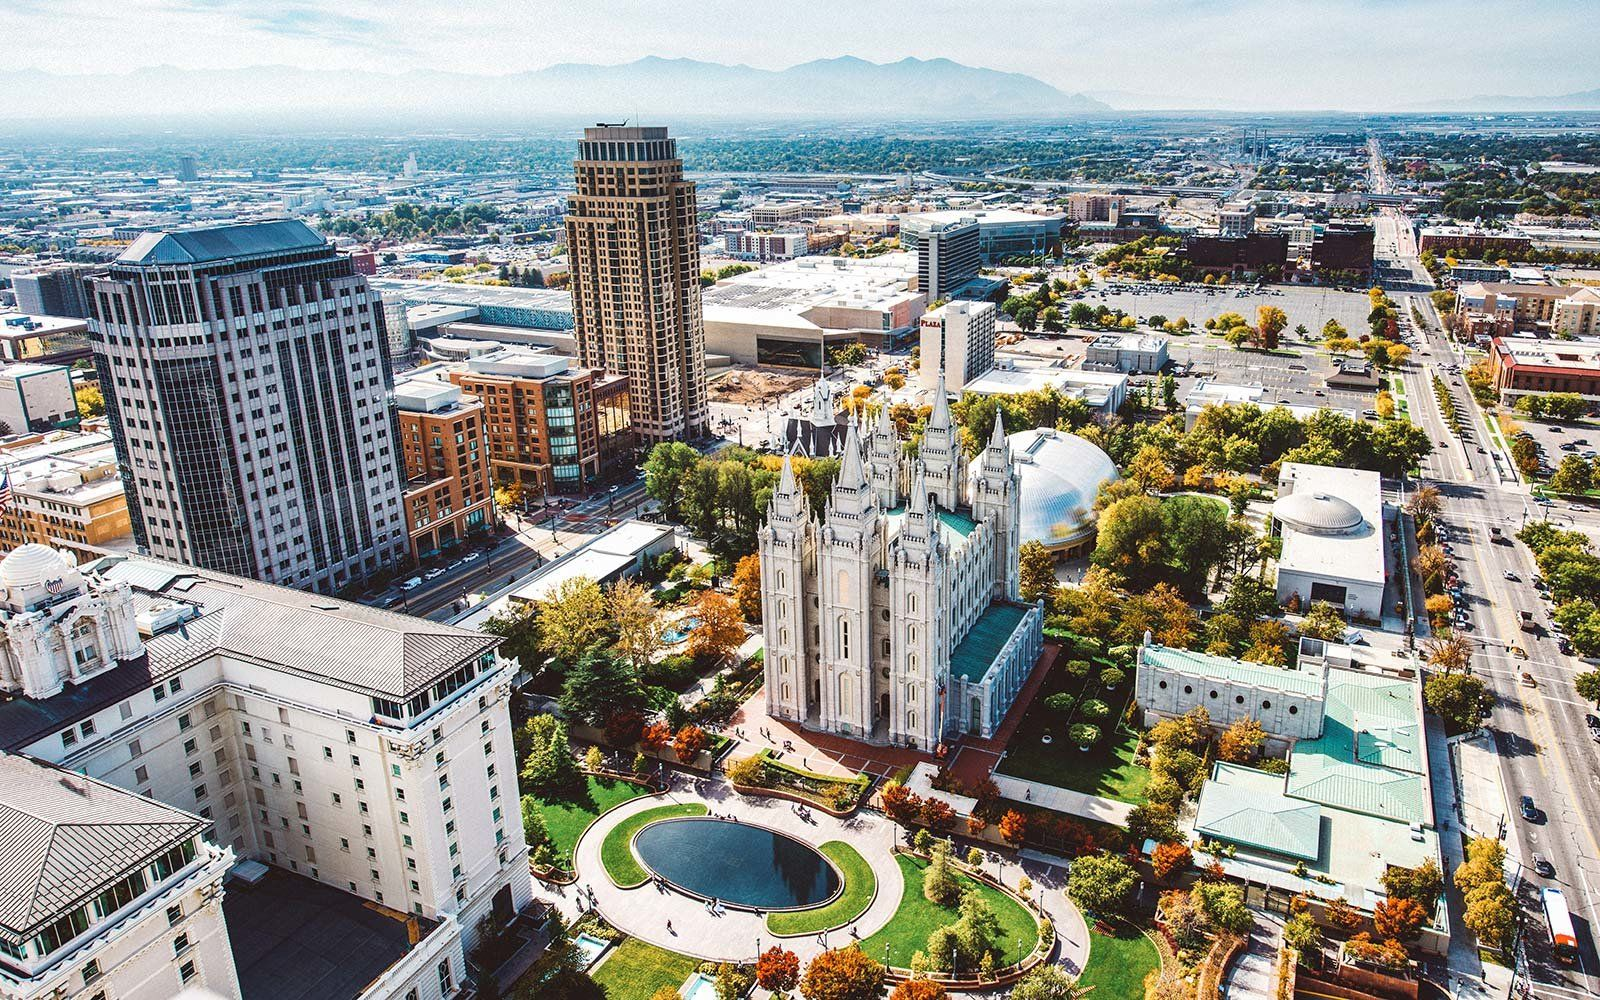 Visit Salt Lake City Utah Top Restaurants Bars Attractions Salt Lake City Salt Lake City Utah Best Places To Live